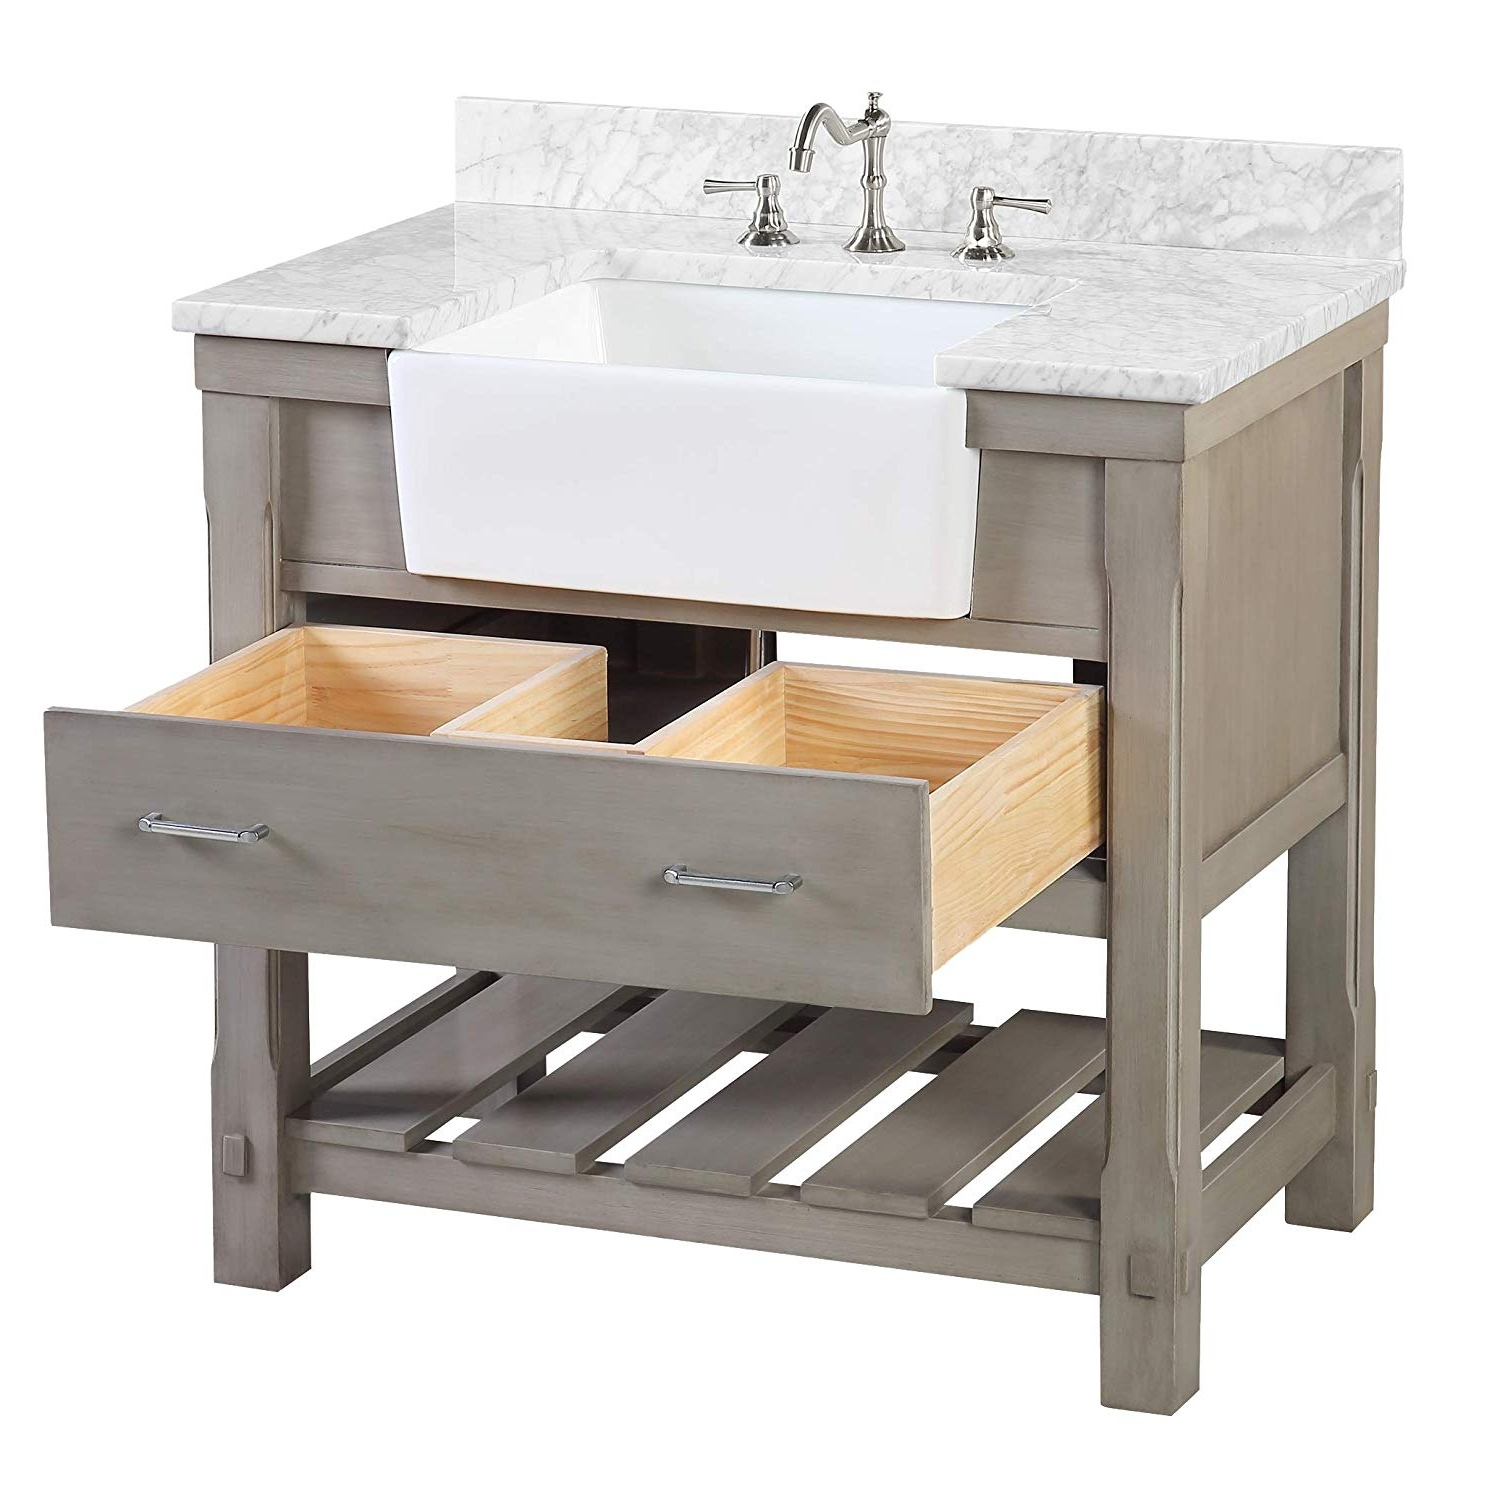 Most Recently Released Thick White Marble Slab Dining Tables With Weathered Grey Finish Regarding Charlotte 36 Inch Bathroom Vanity (carrara/weathered Gray): Includes A Carrara Marble Countertop, Royal Blue Cabinet With Soft Close Drawers, And (Gallery 11 of 30)